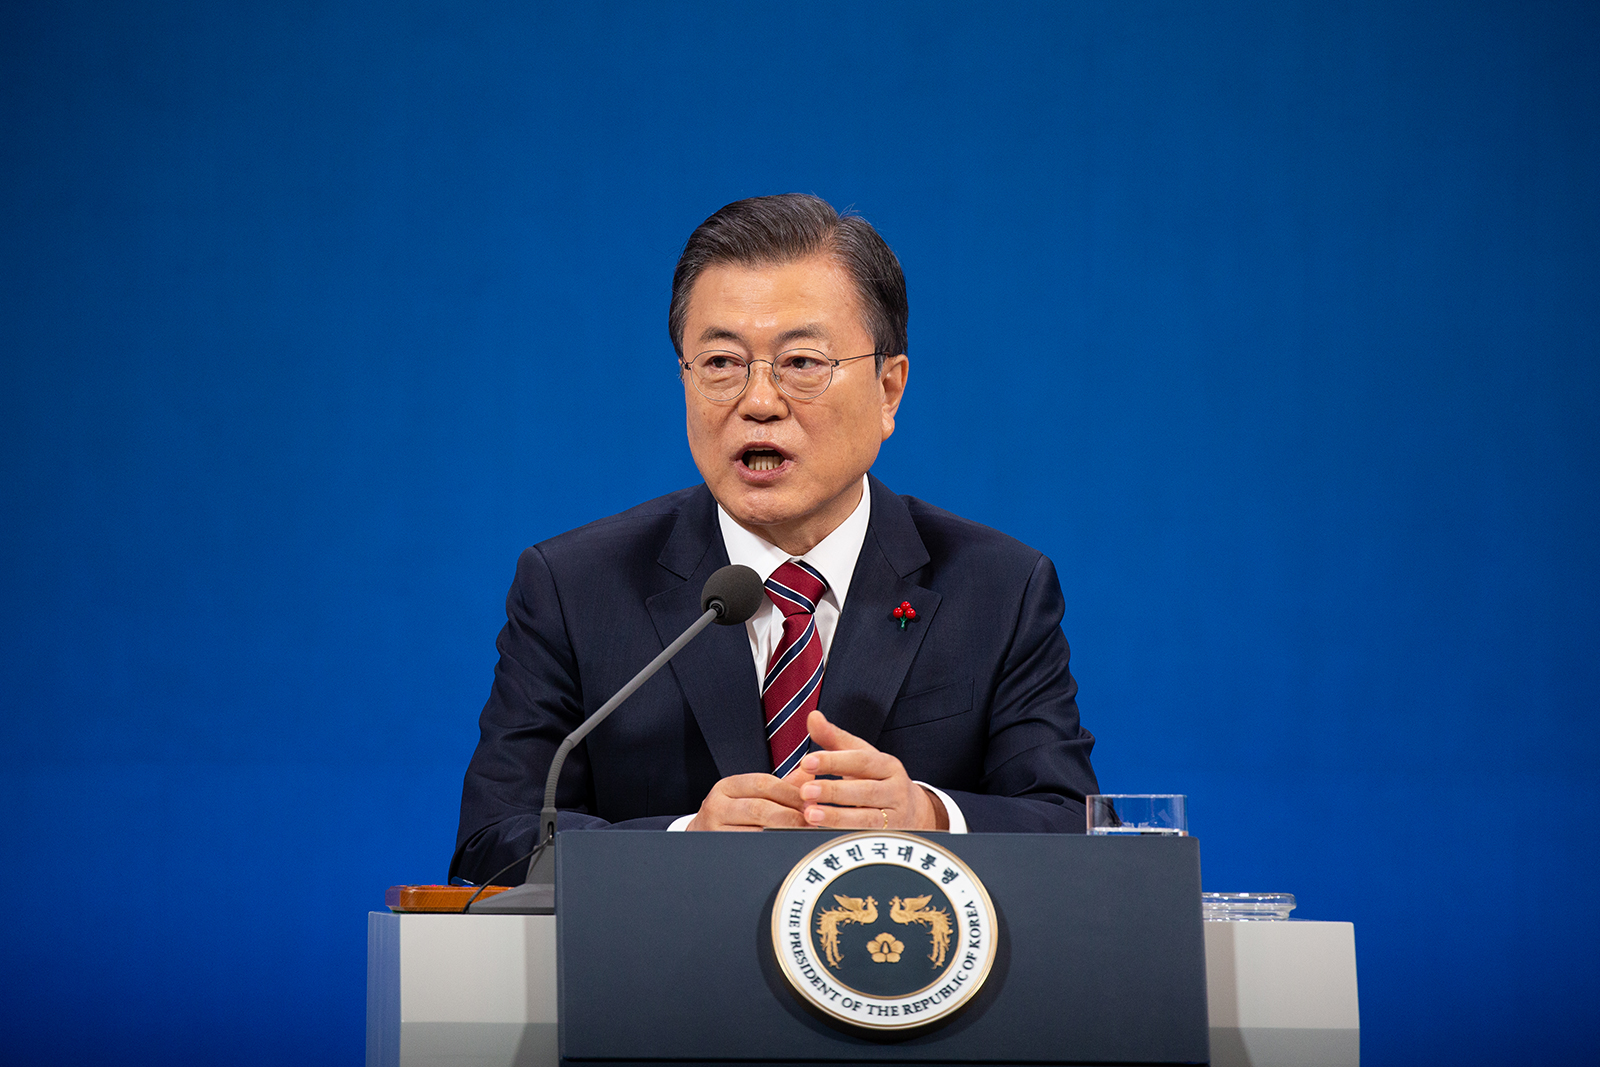 President Moon Jae-in speaks during a news conference at the Presidential Blue House in Seoul, South Korea, on January 18.